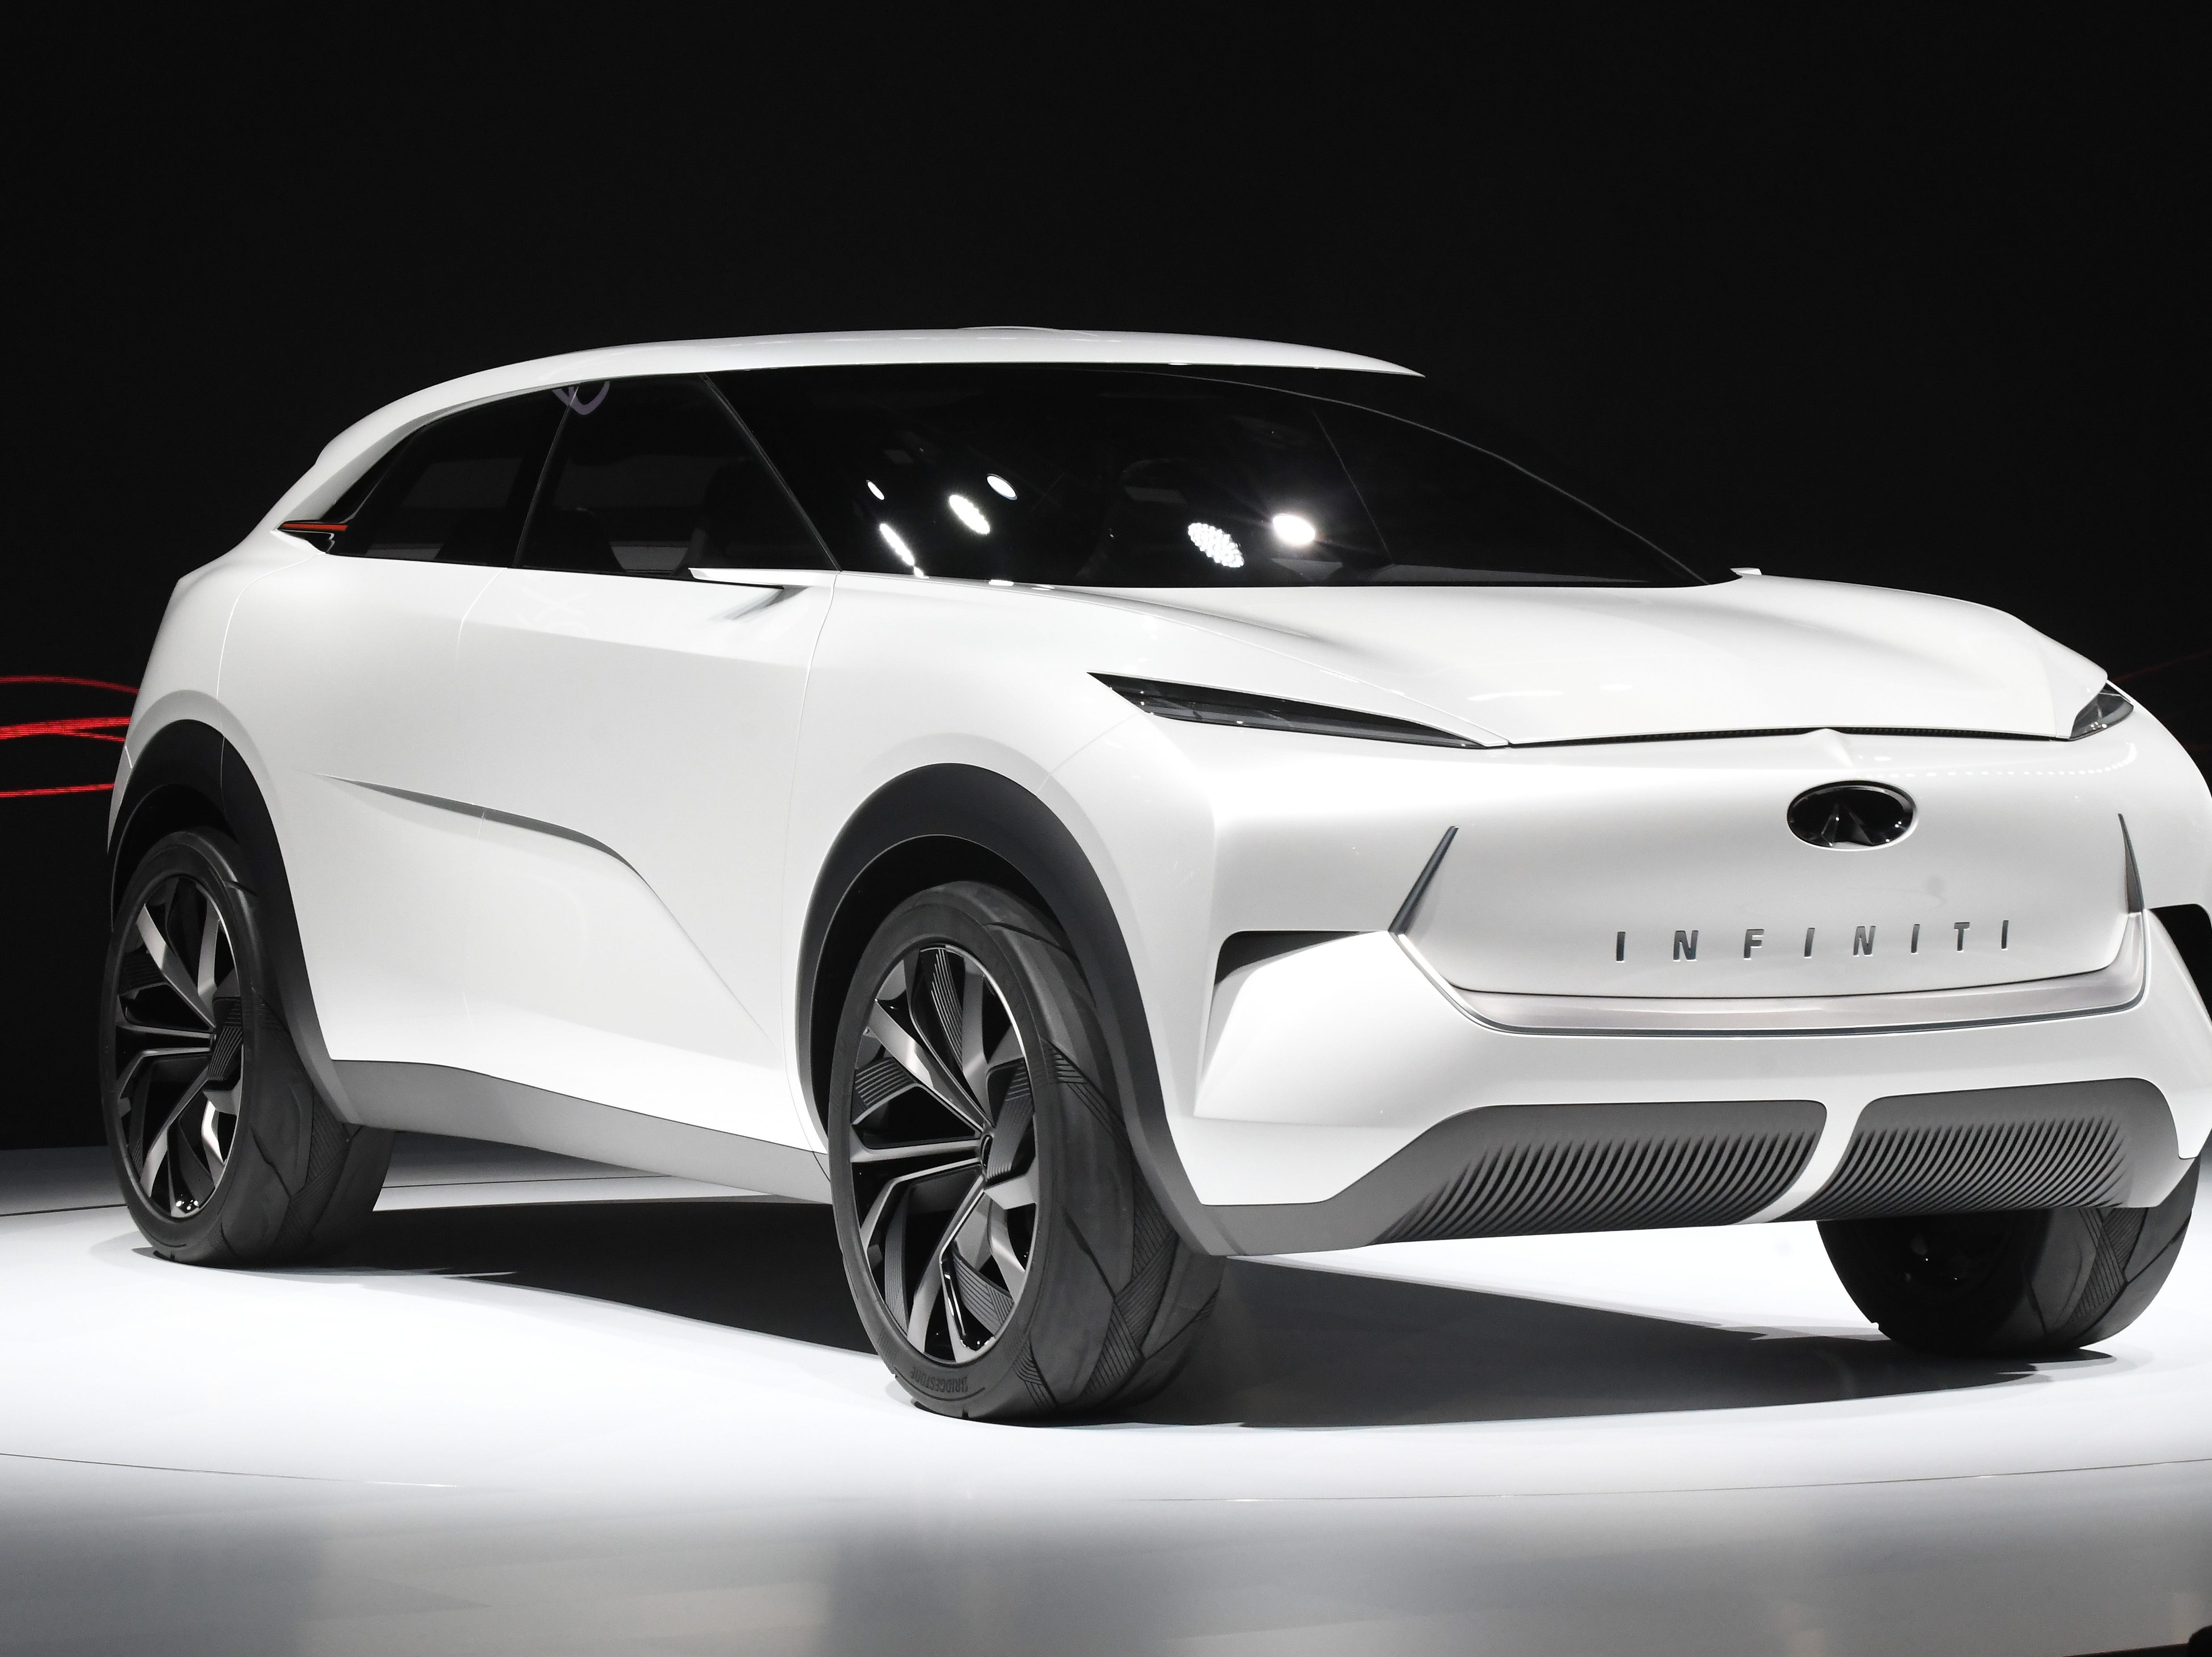 The Infiniti QX Inspiration concept vehicle is finally on display in Detroit after being pushed onto the show floor and uncovered.